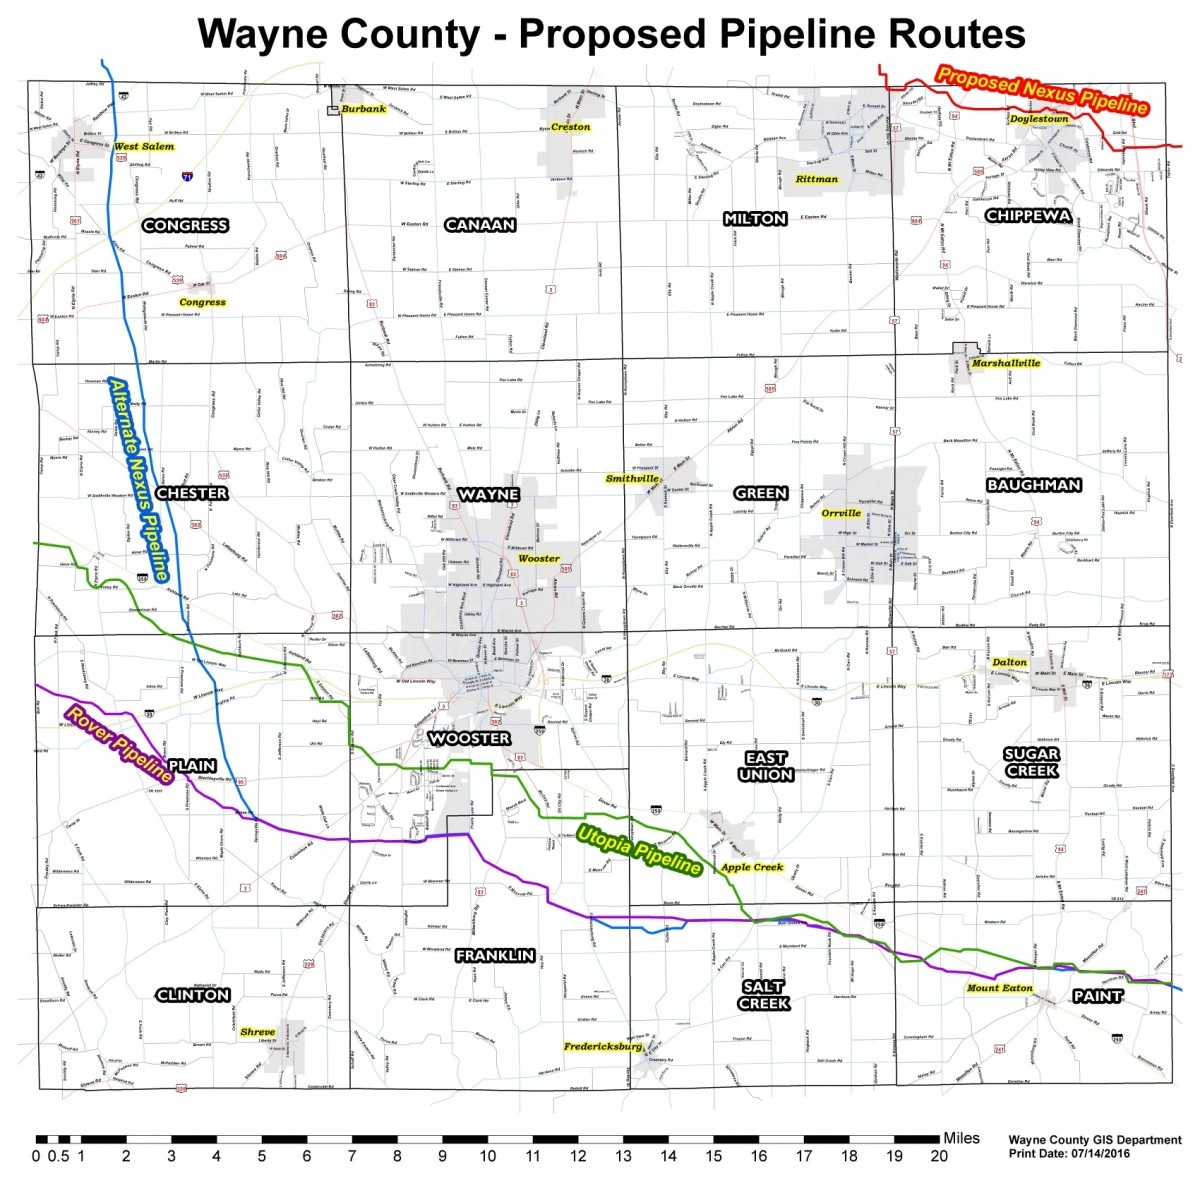 Wayne County Proposed Pipeline Routes